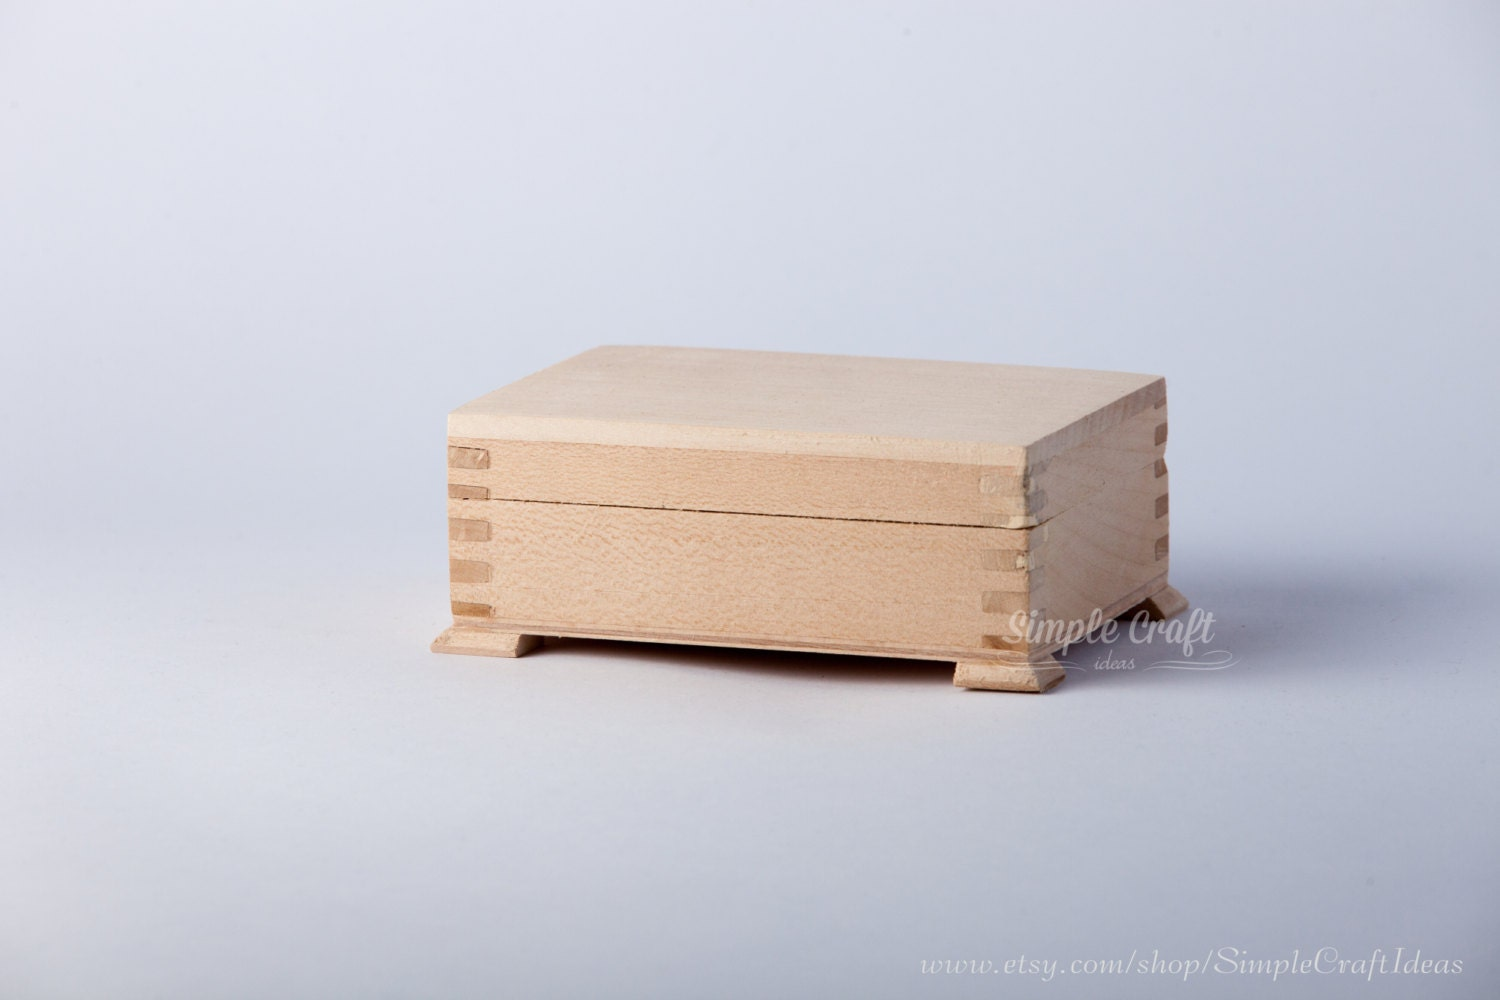 Diy wooden box unfinished wooden box diy wood crafts diy home for Unfinished wooden boxes for crafts